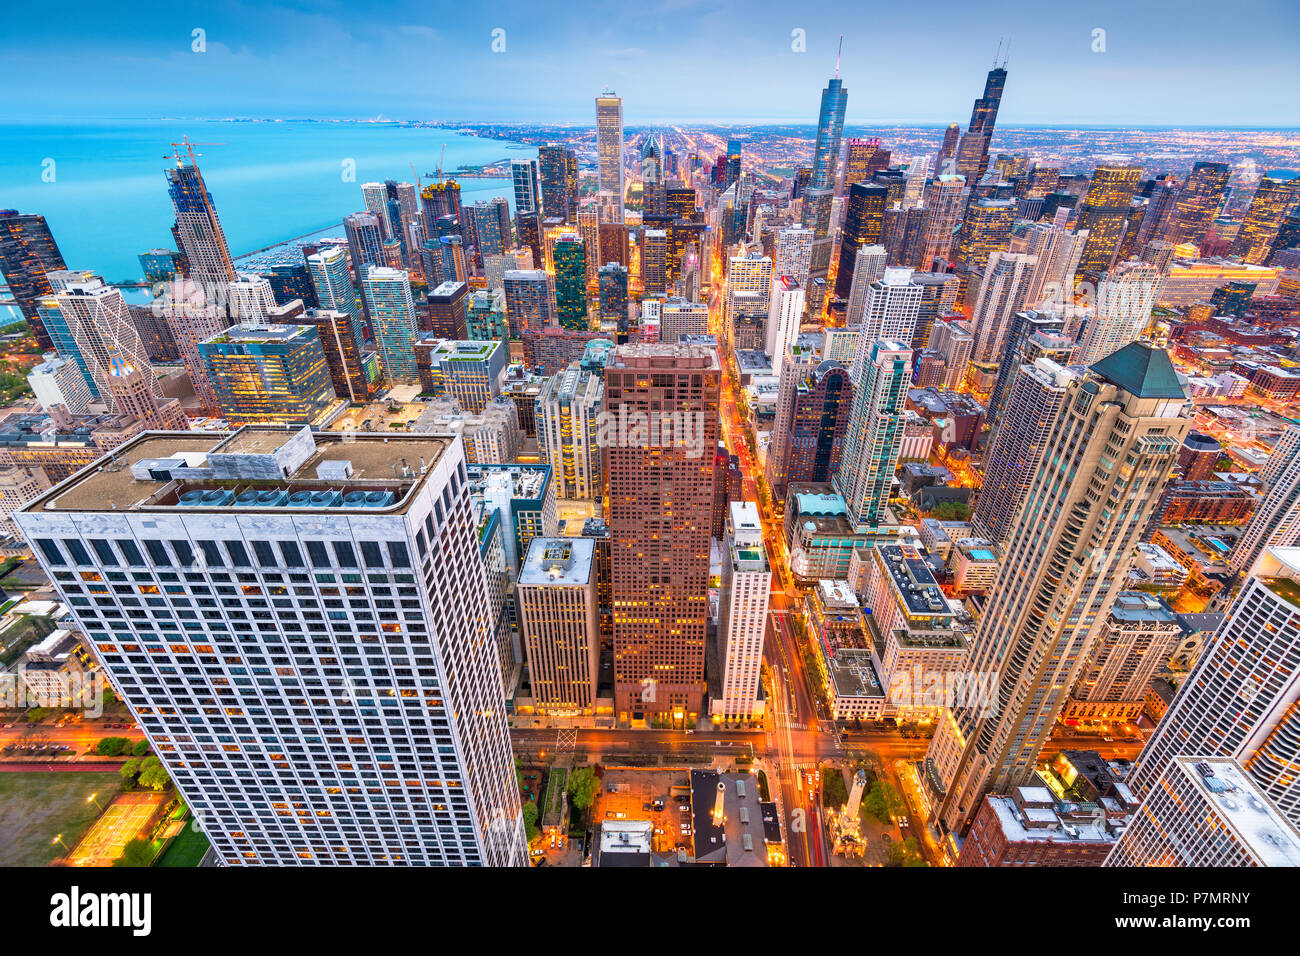 Chicago, Illinois, USA aerial cityscape at dusk. - Stock Image